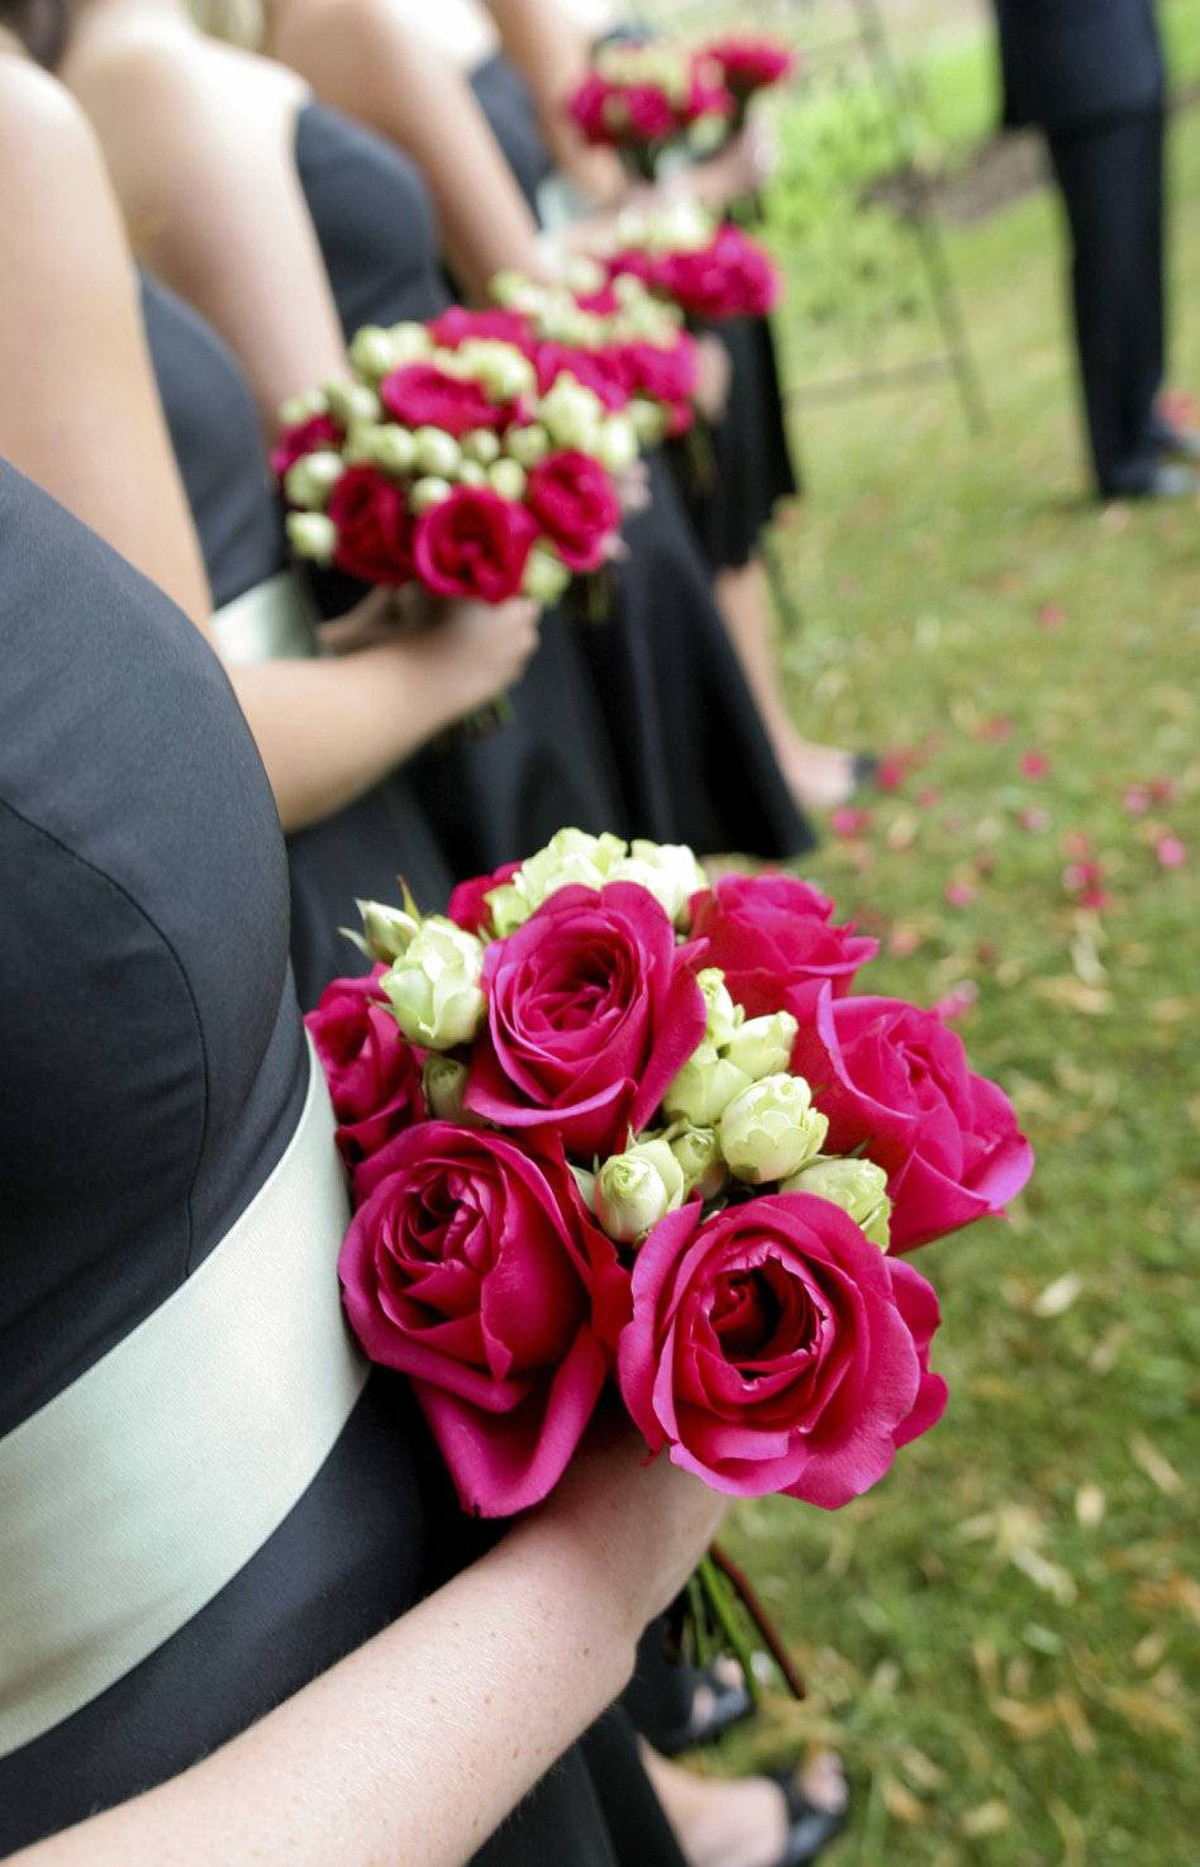 ANTI-MATCHING That parade of bridesmaids in matching pink-taffeta gowns? So 2011. Today's ceremonies make room for individual differences, including attendant dresses that flatter all body and skin types, even if they differ in colour and style. The anti-matching trend extends to engagement rings combining white and gold metals.